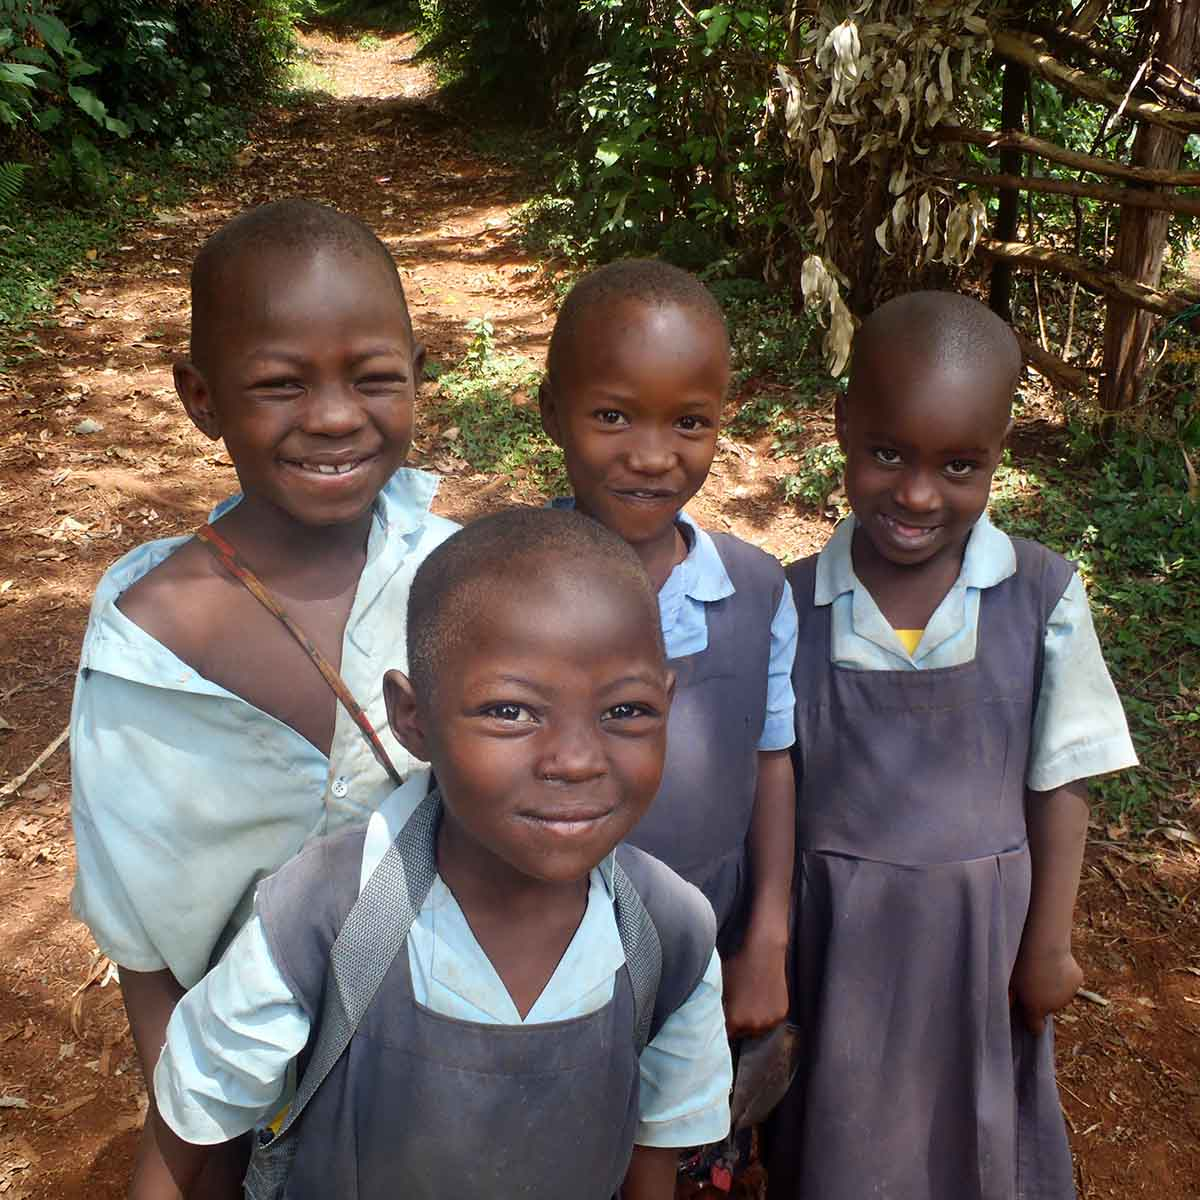 Four smiling and precocious little Kenyan students posing on road to go to school.